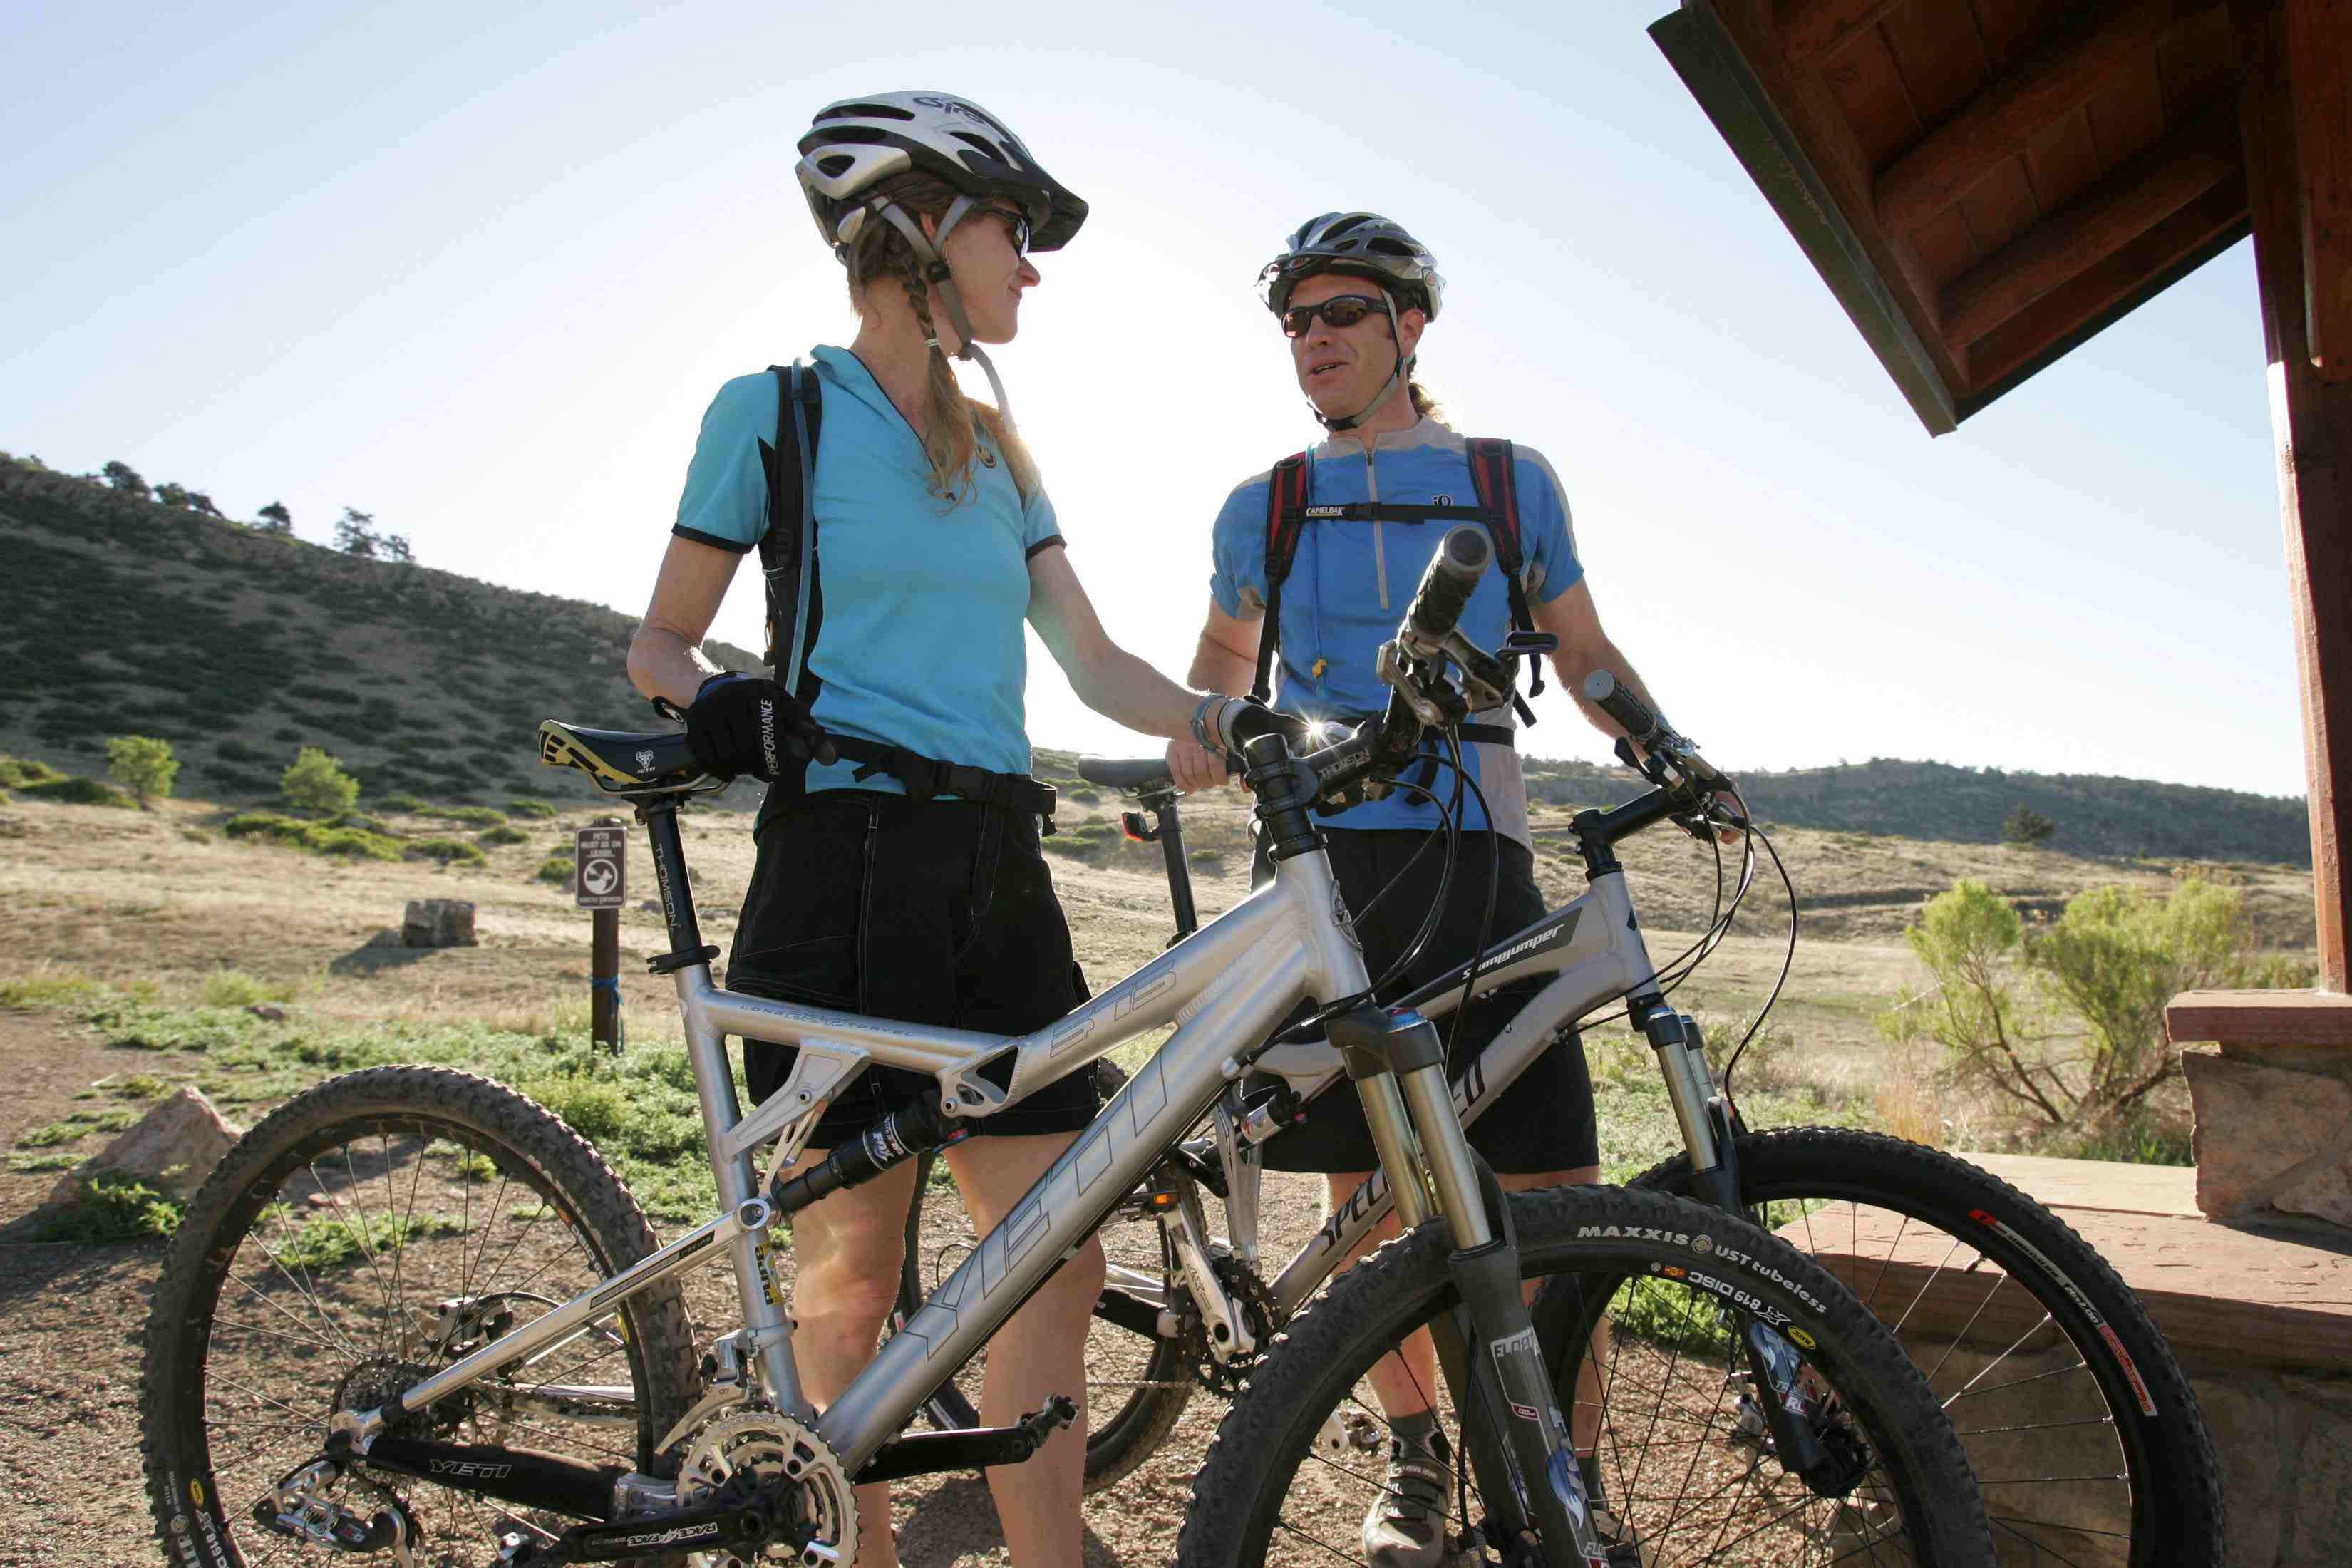 Trail riding is enjoyed by many people in the western states of the U.S.